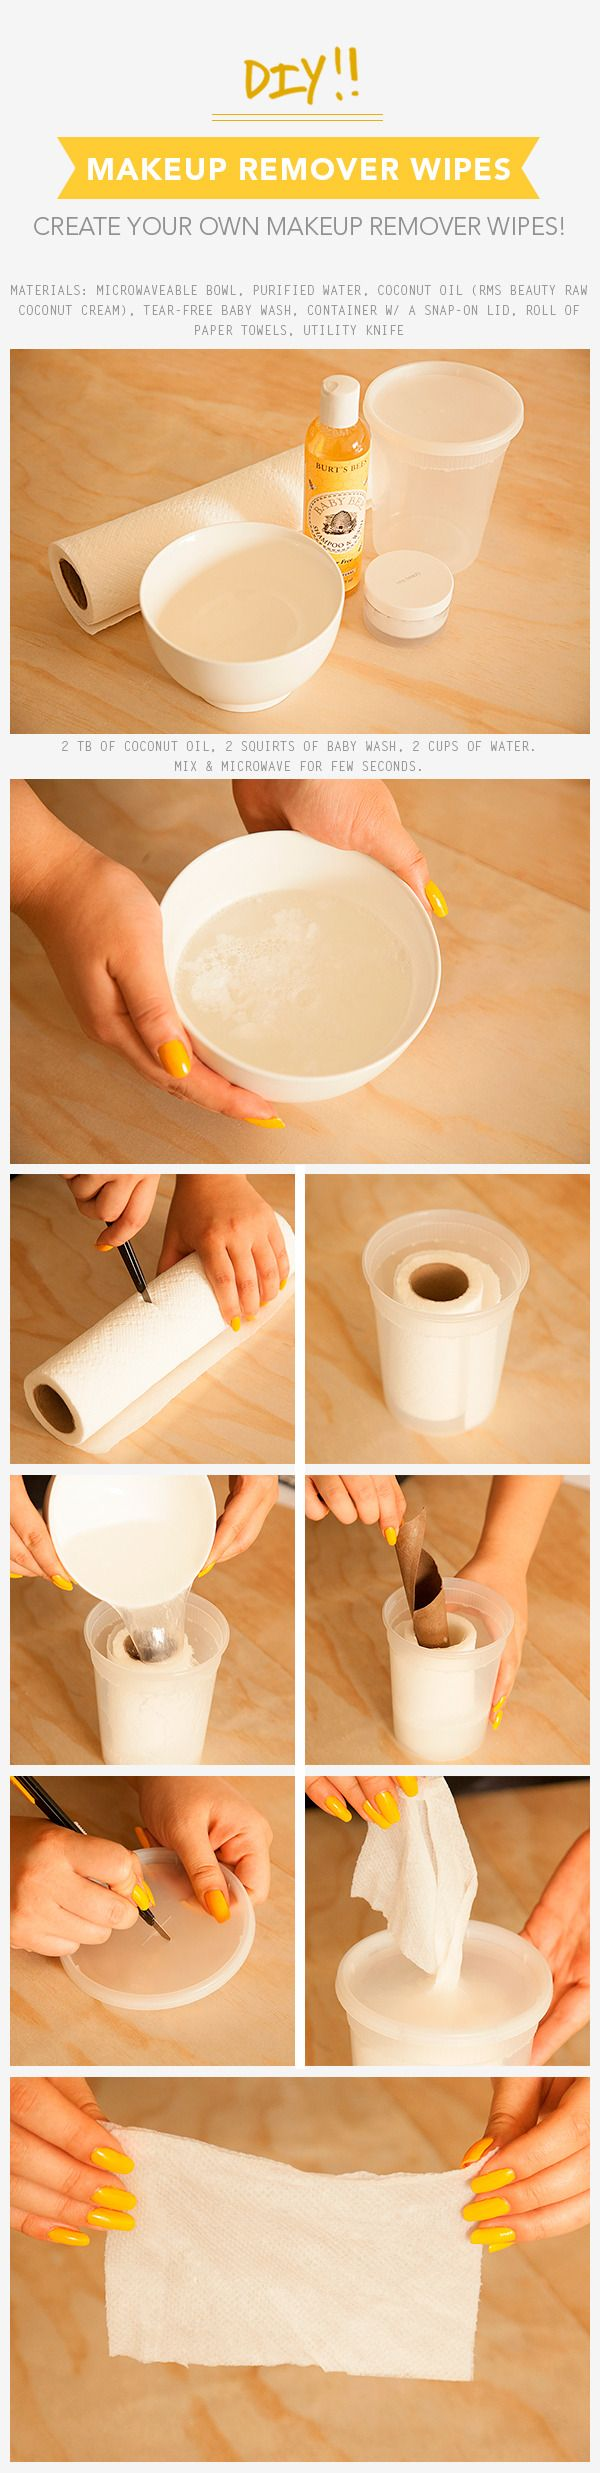 How to Make Your Own Makeup Remover Wipes Diy makeup